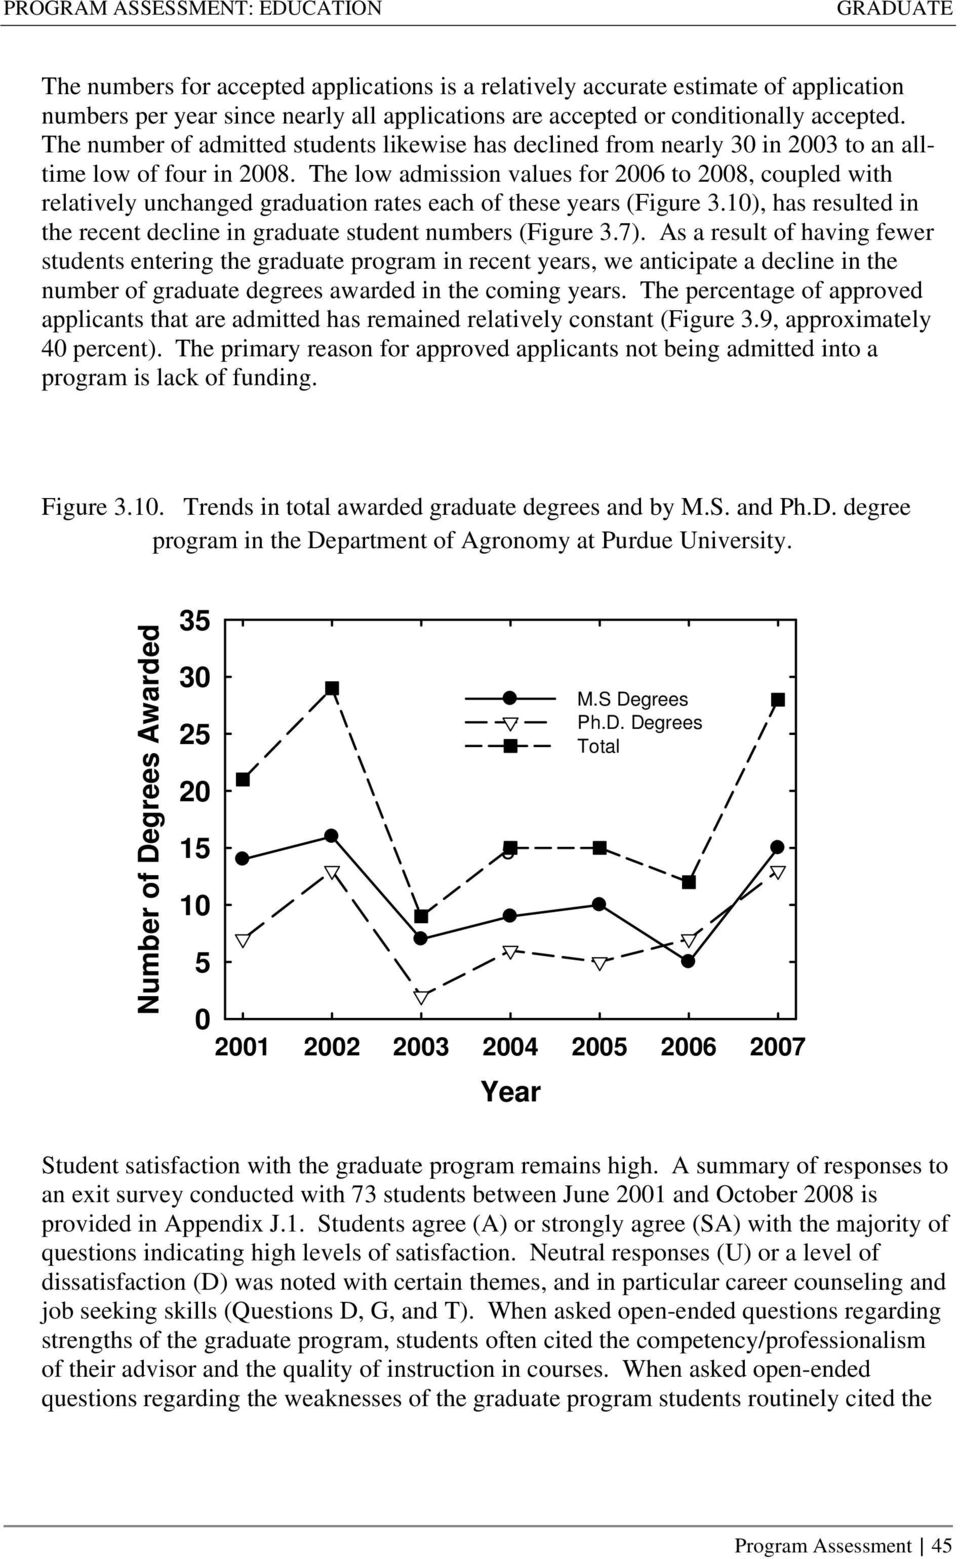 The low admission values for 2006 to 2008, coupled with relatively unchanged graduation rates each of these years (Figure 3.